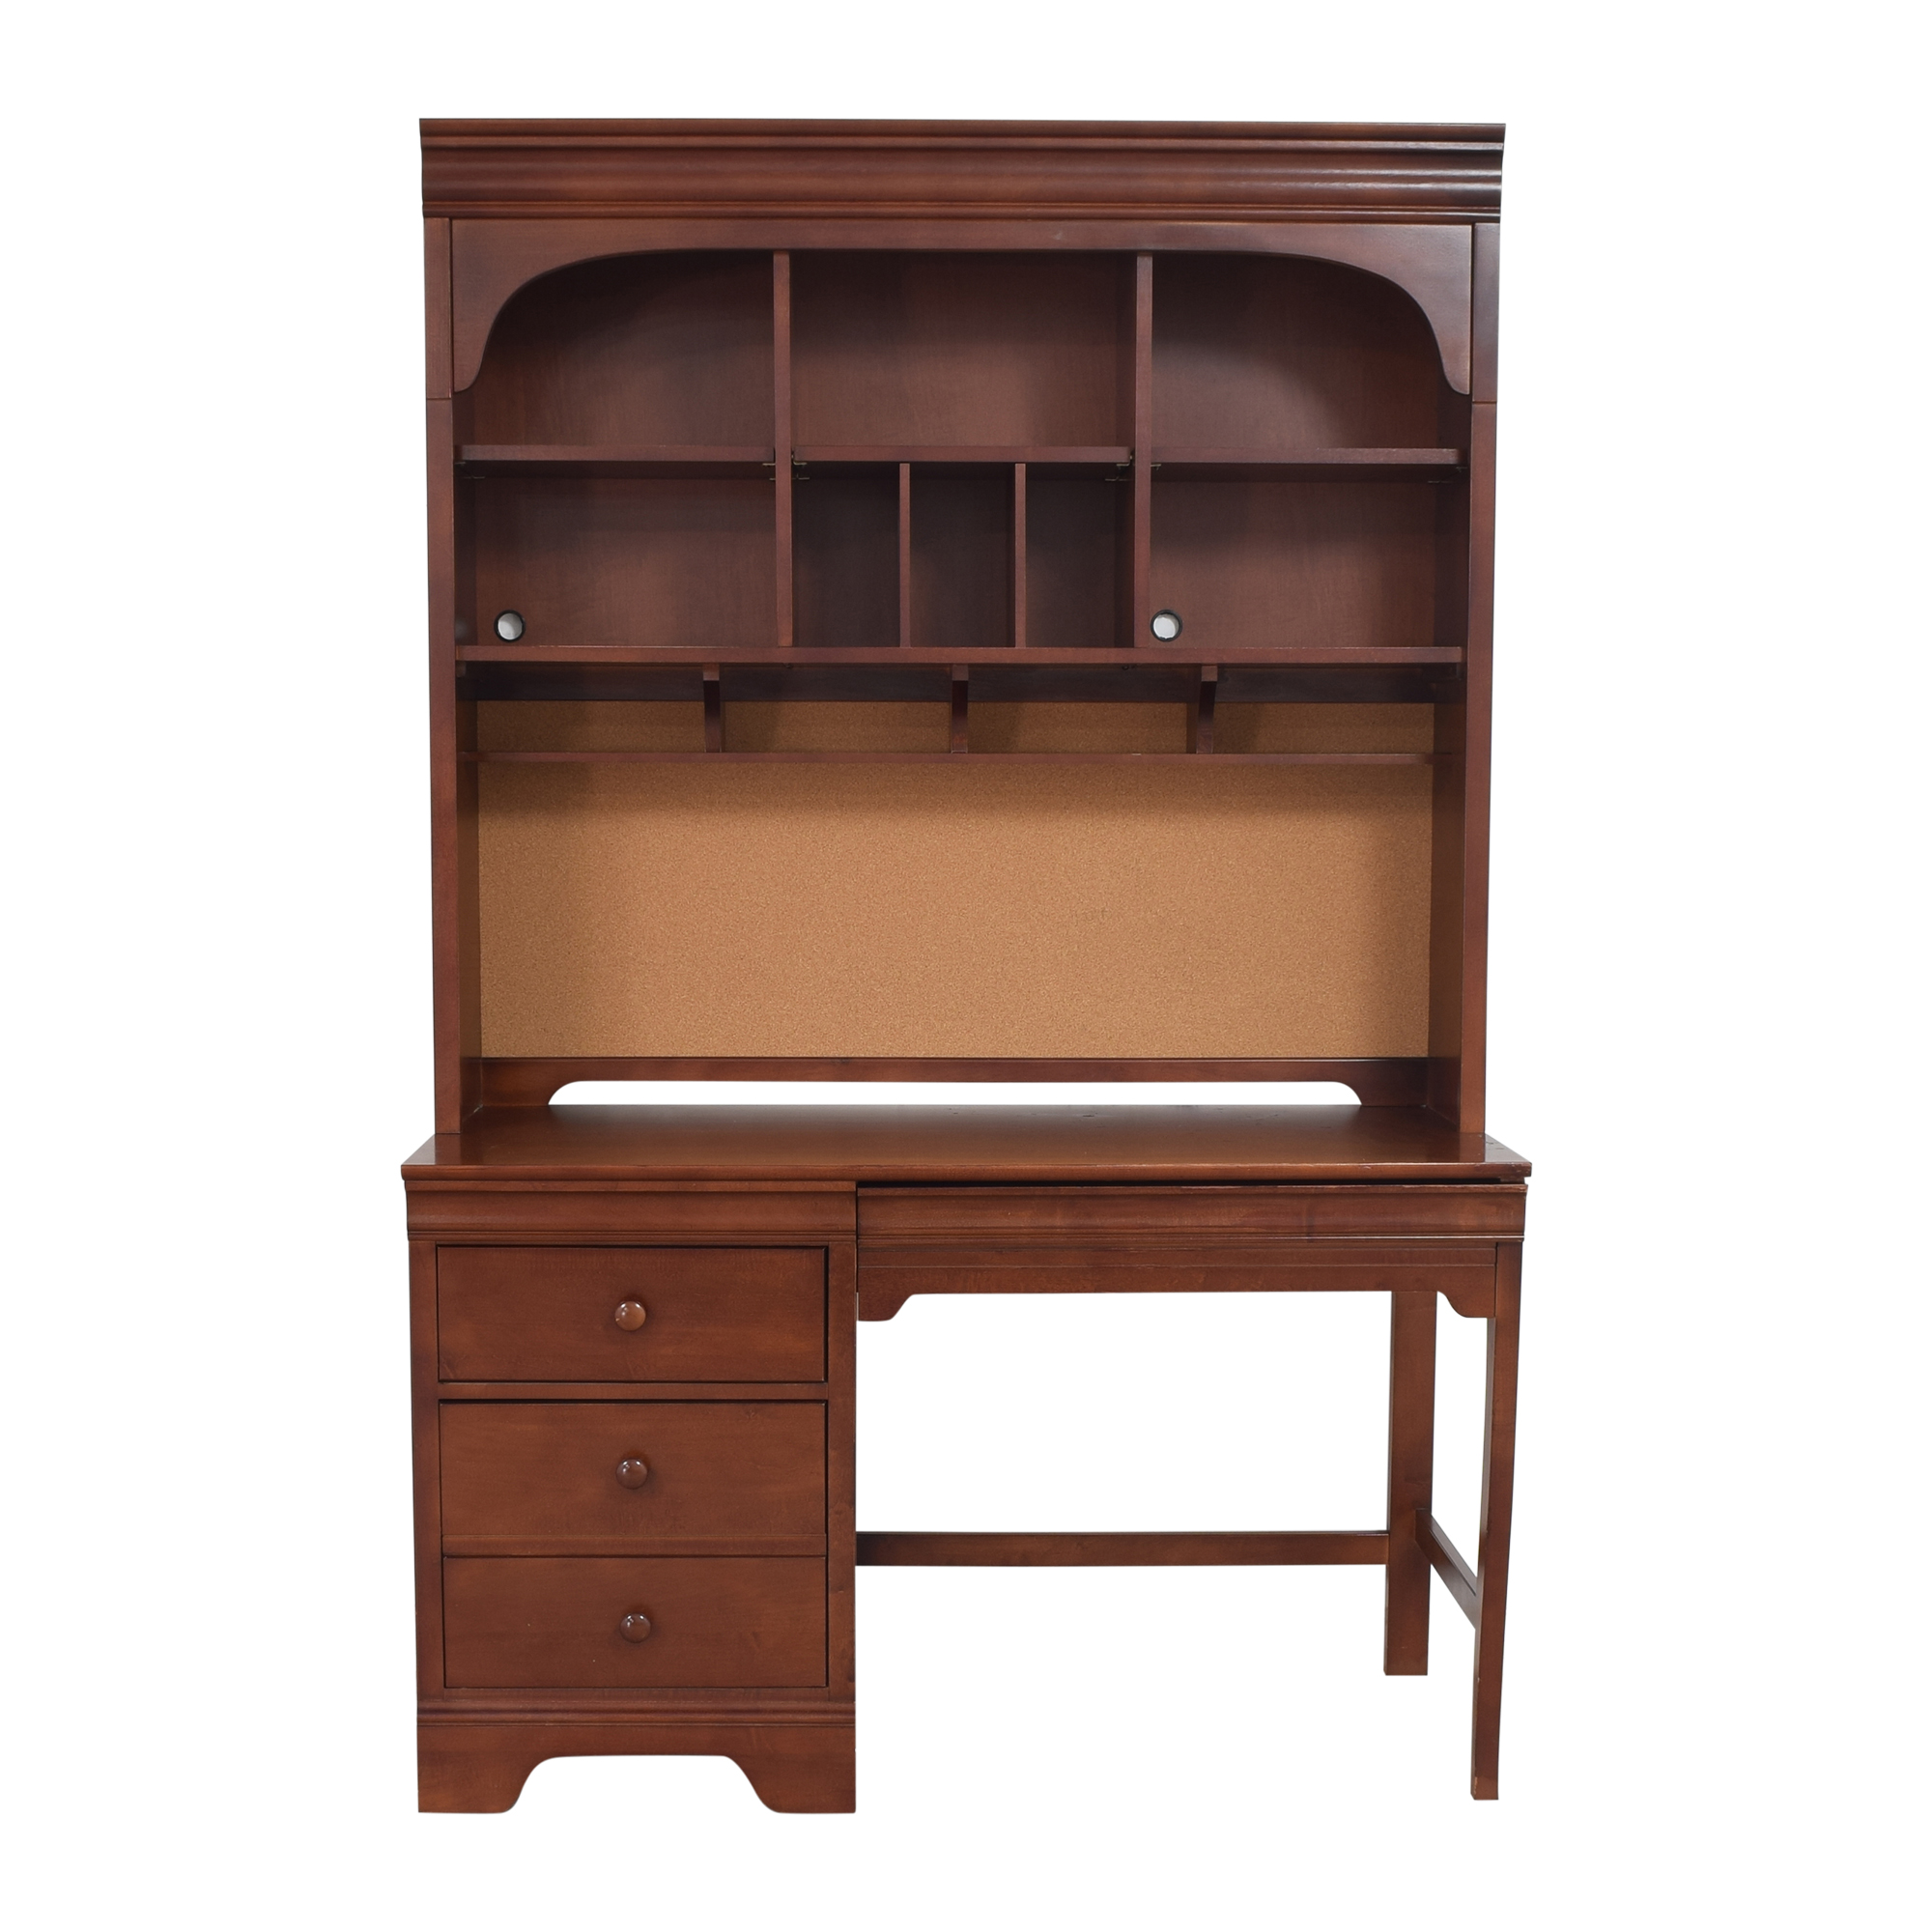 Stanley Furniture Stanley Furniture Young America Desk with Hutch coupon